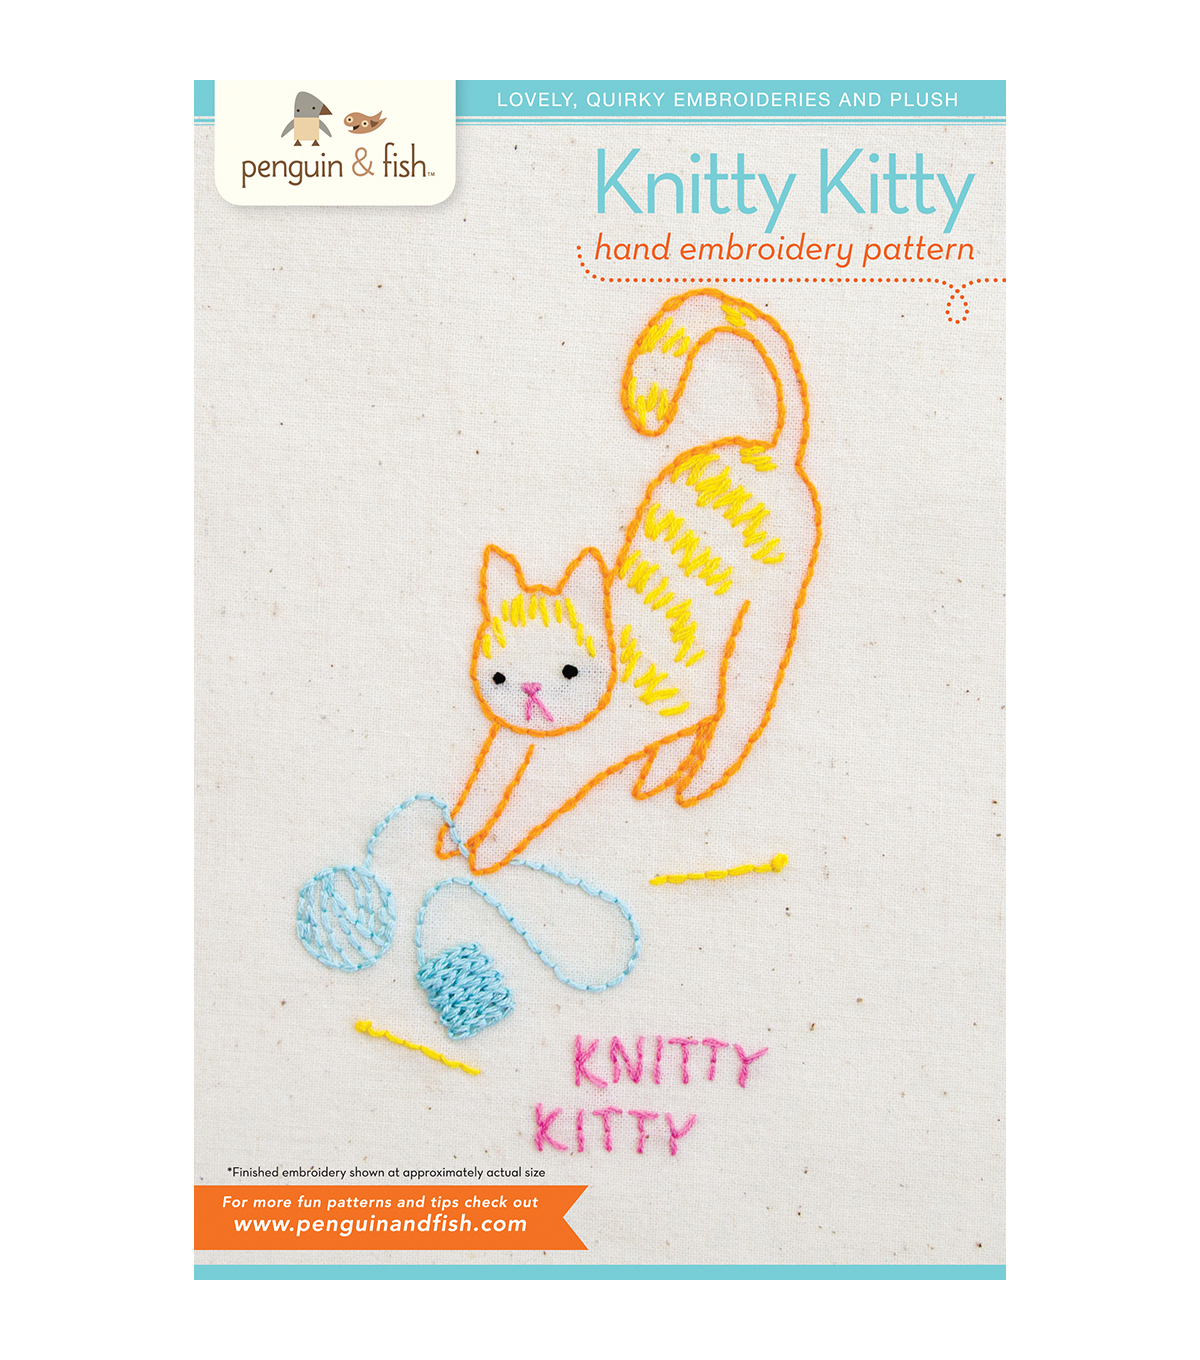 Knitty Kitty Hand Embroidery Pattern